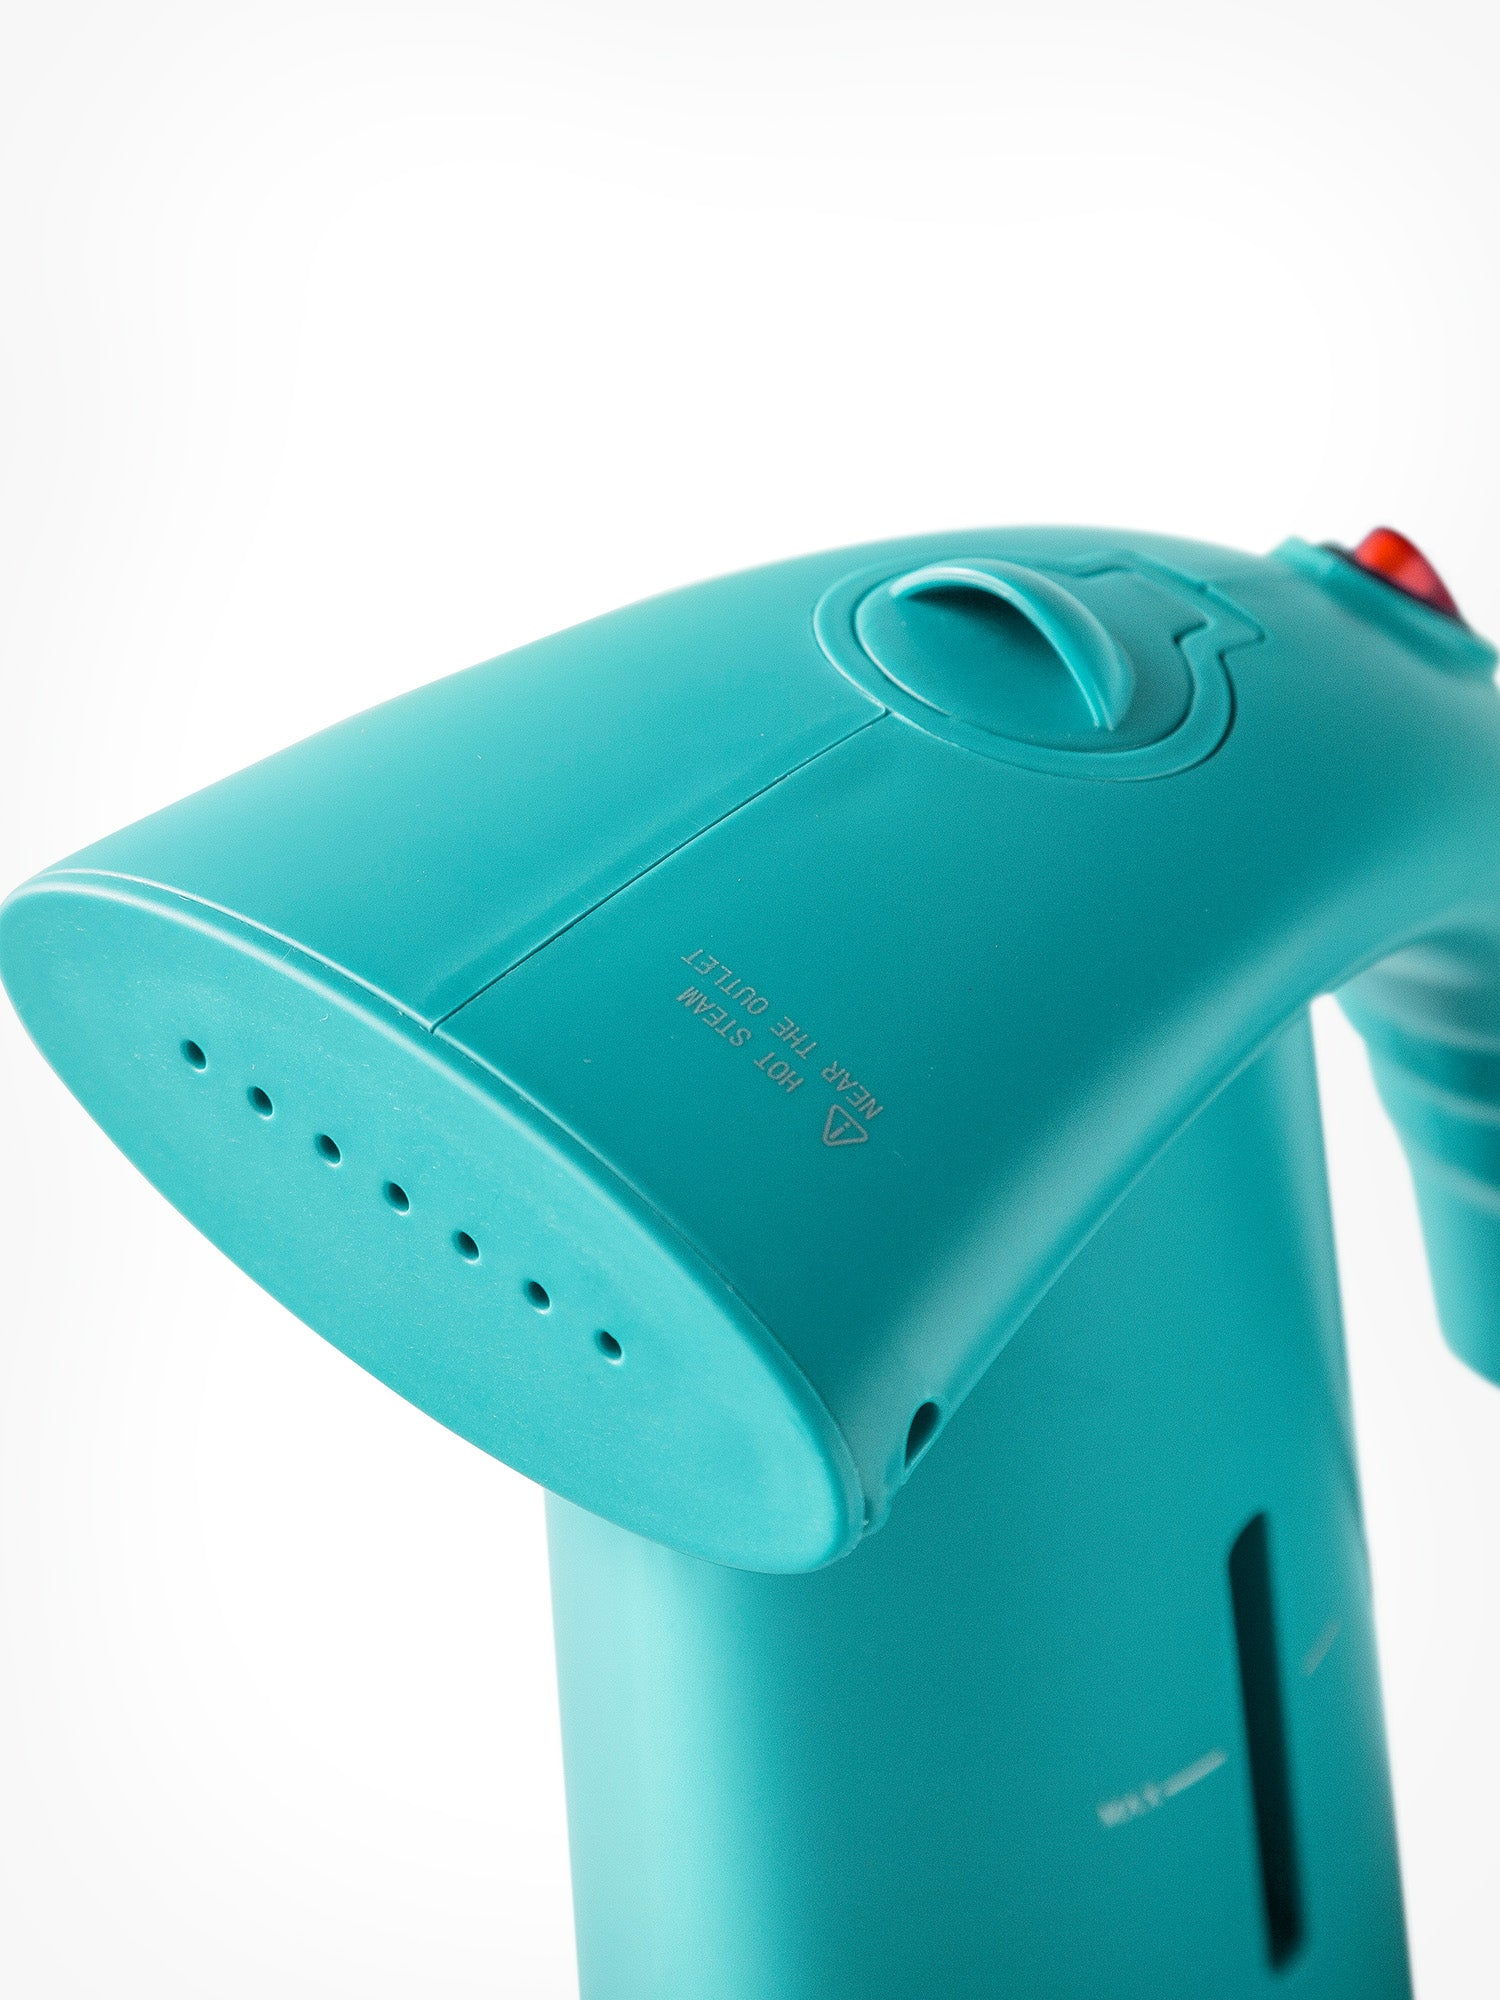 Dual Voltage Handheld Steamer